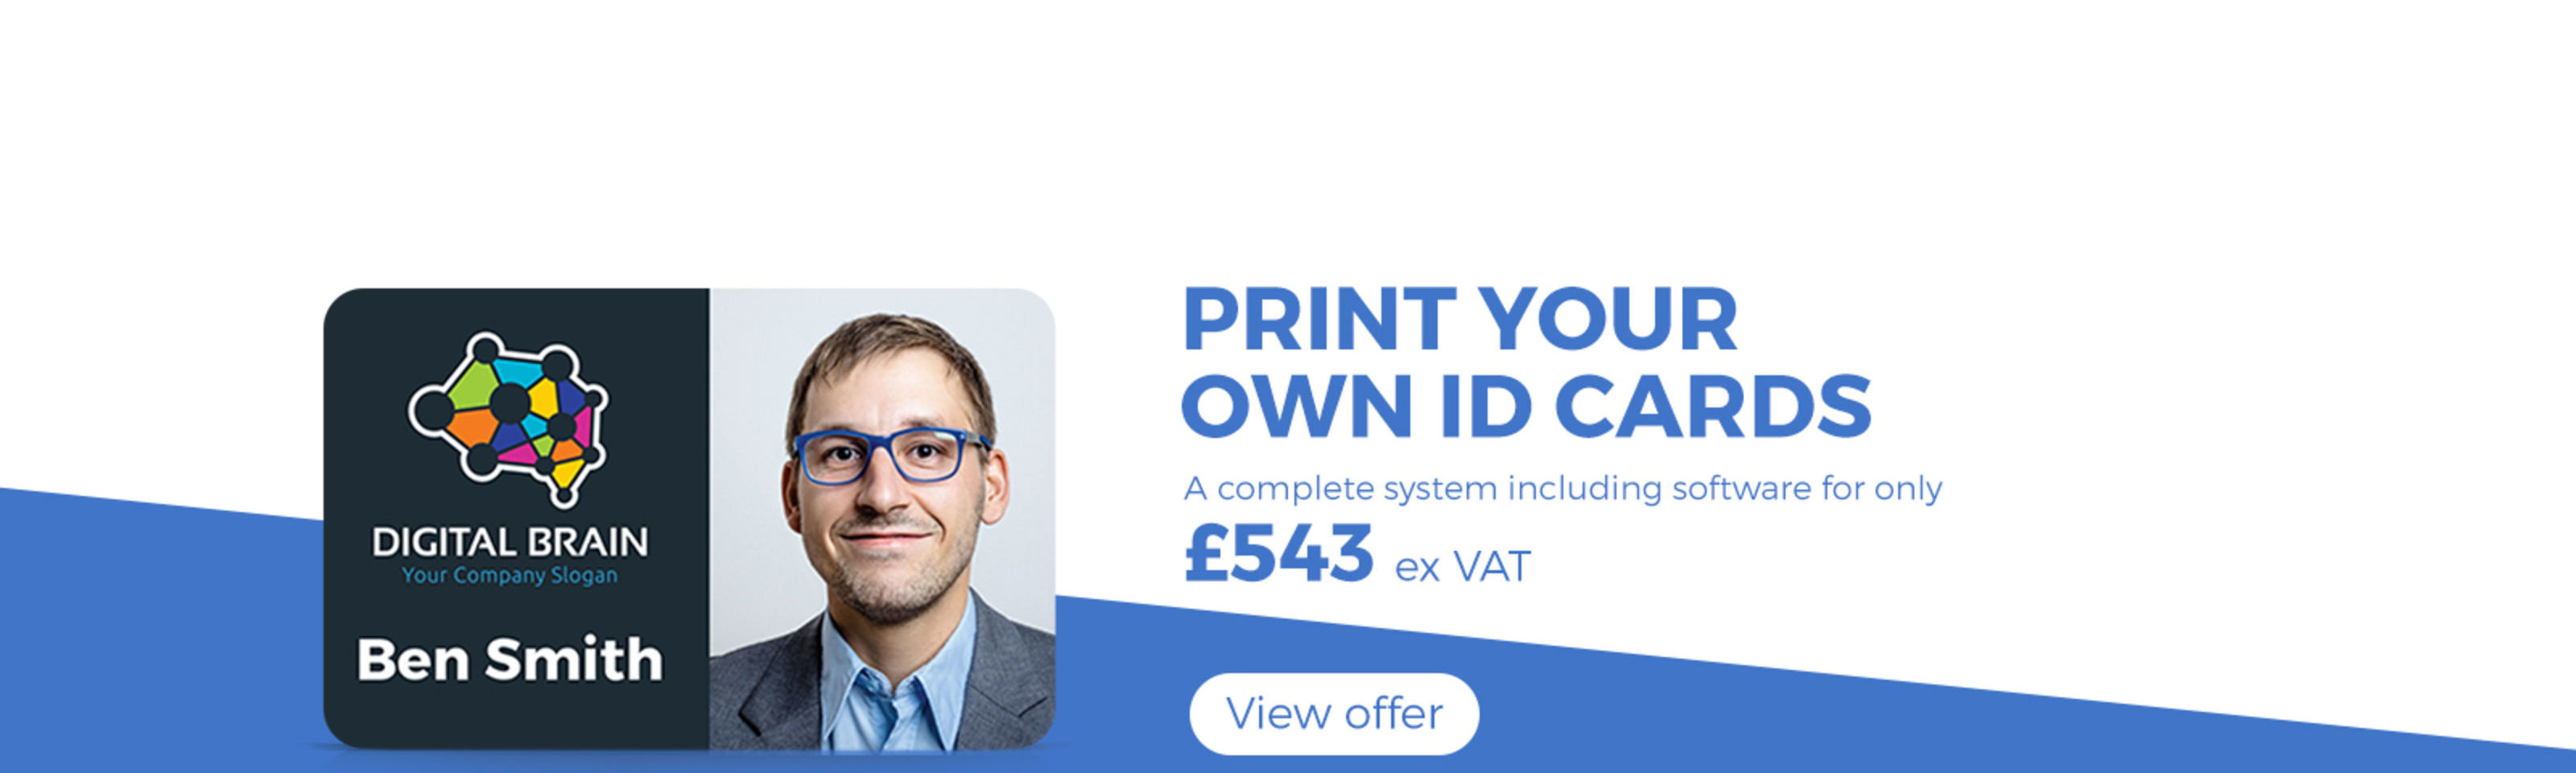 ID Card Printer Only £543